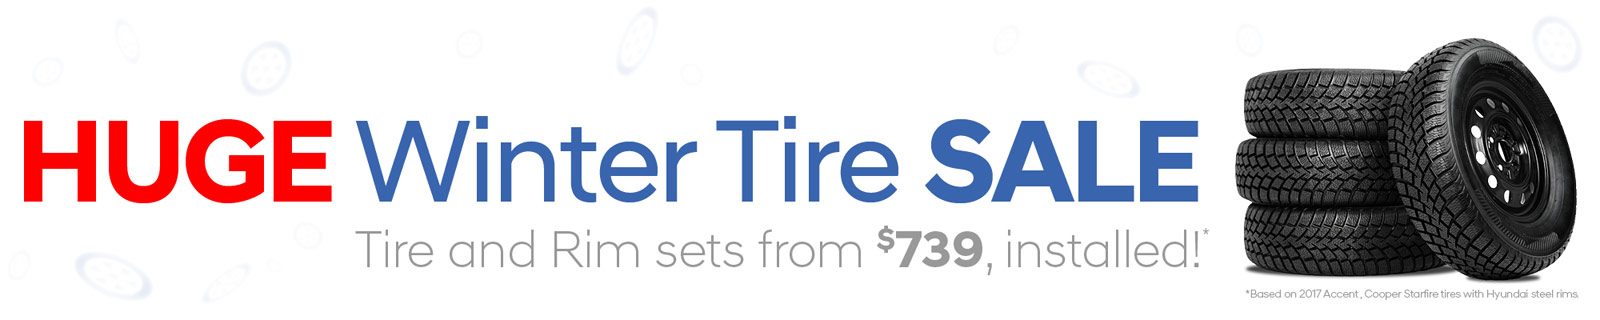 Huge Winter Tire Sale! Tire and Rim sets from $739, installed!